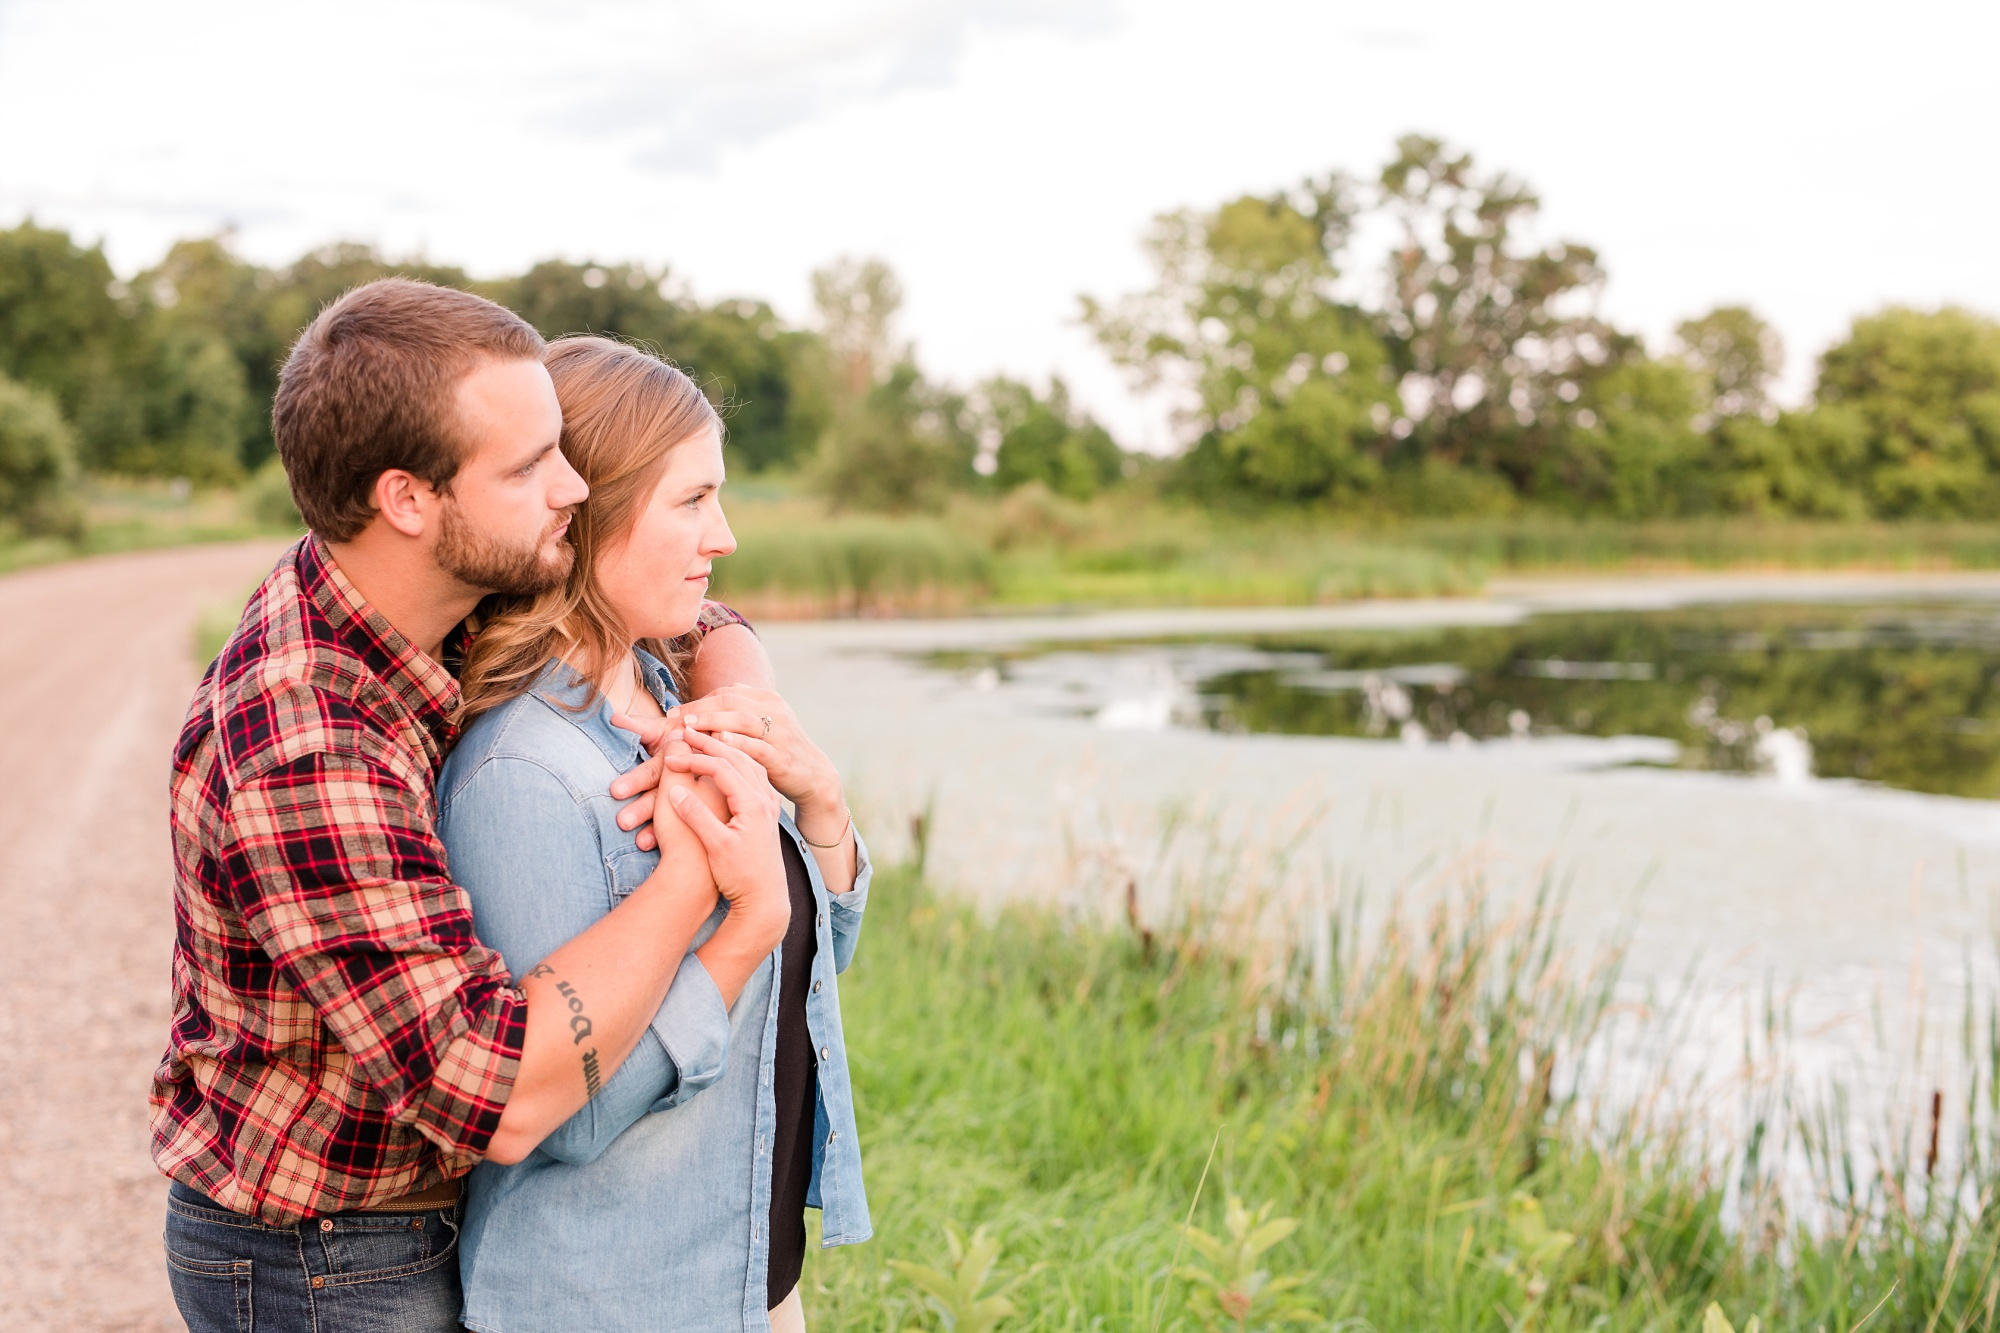 AmberLangerudPhotography_Countryside Engagement Session in Minnesota_3132.jpg